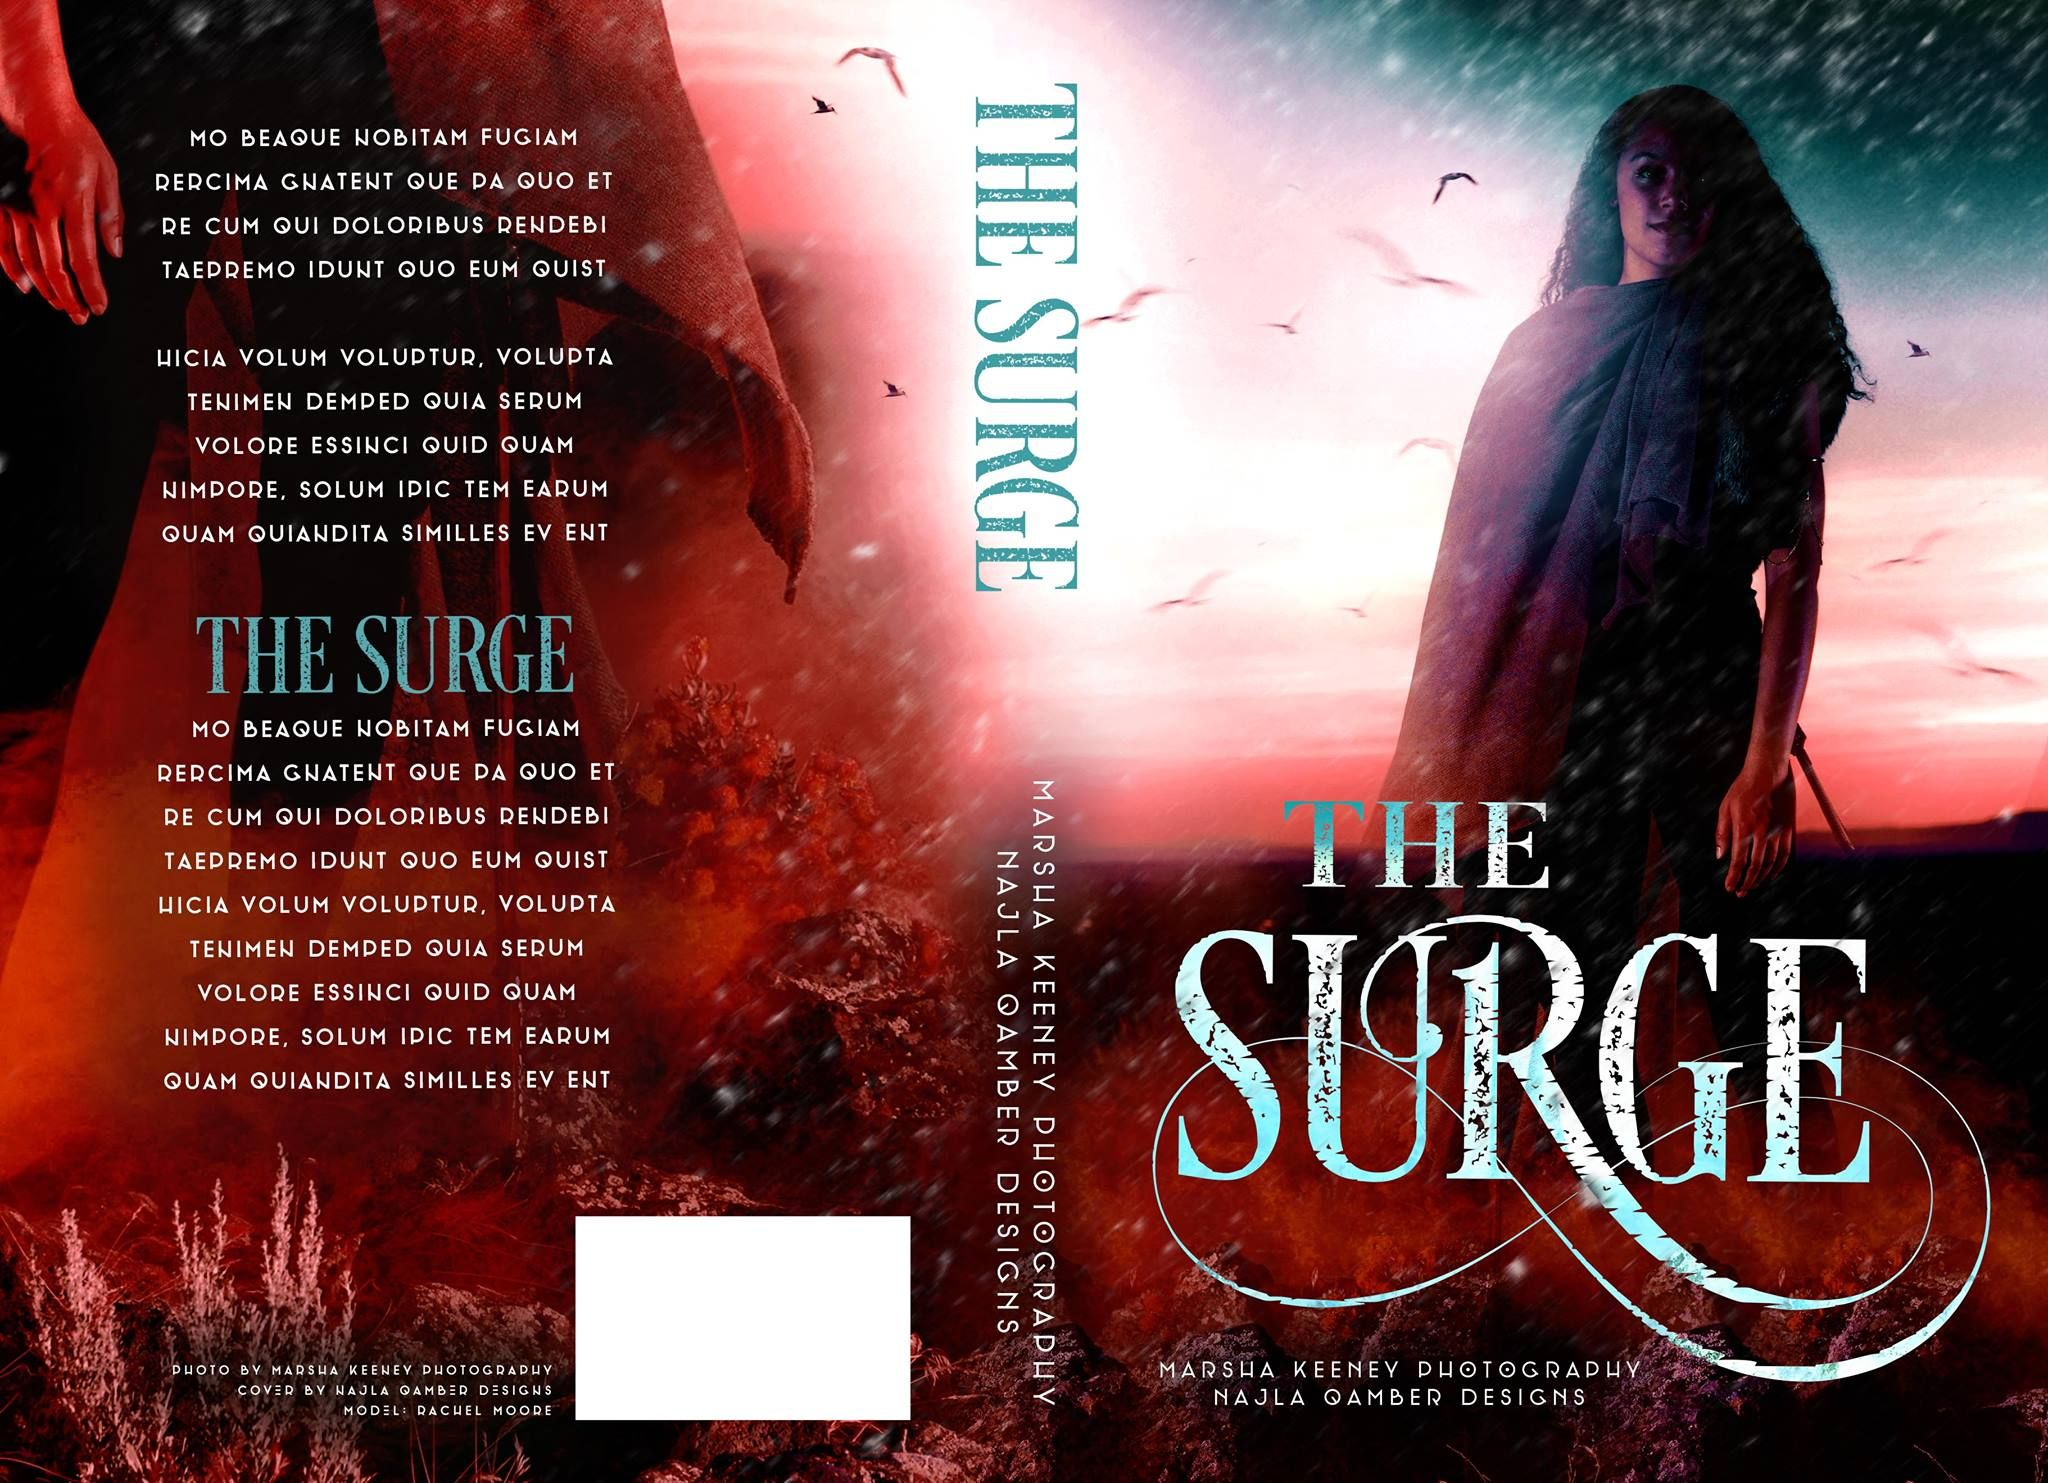 ~ Exclusive Premade ~ The Surge Photo by MK Photography Cover Design by Najla Qamber Designs Model: Rachel Moore  Ebook Only = $125 - $150 Ebook + Paperback = $150 - $175  For inquires or to purchase:  http://www.najlaqamberdesigns.com/prices-to-purchase.html